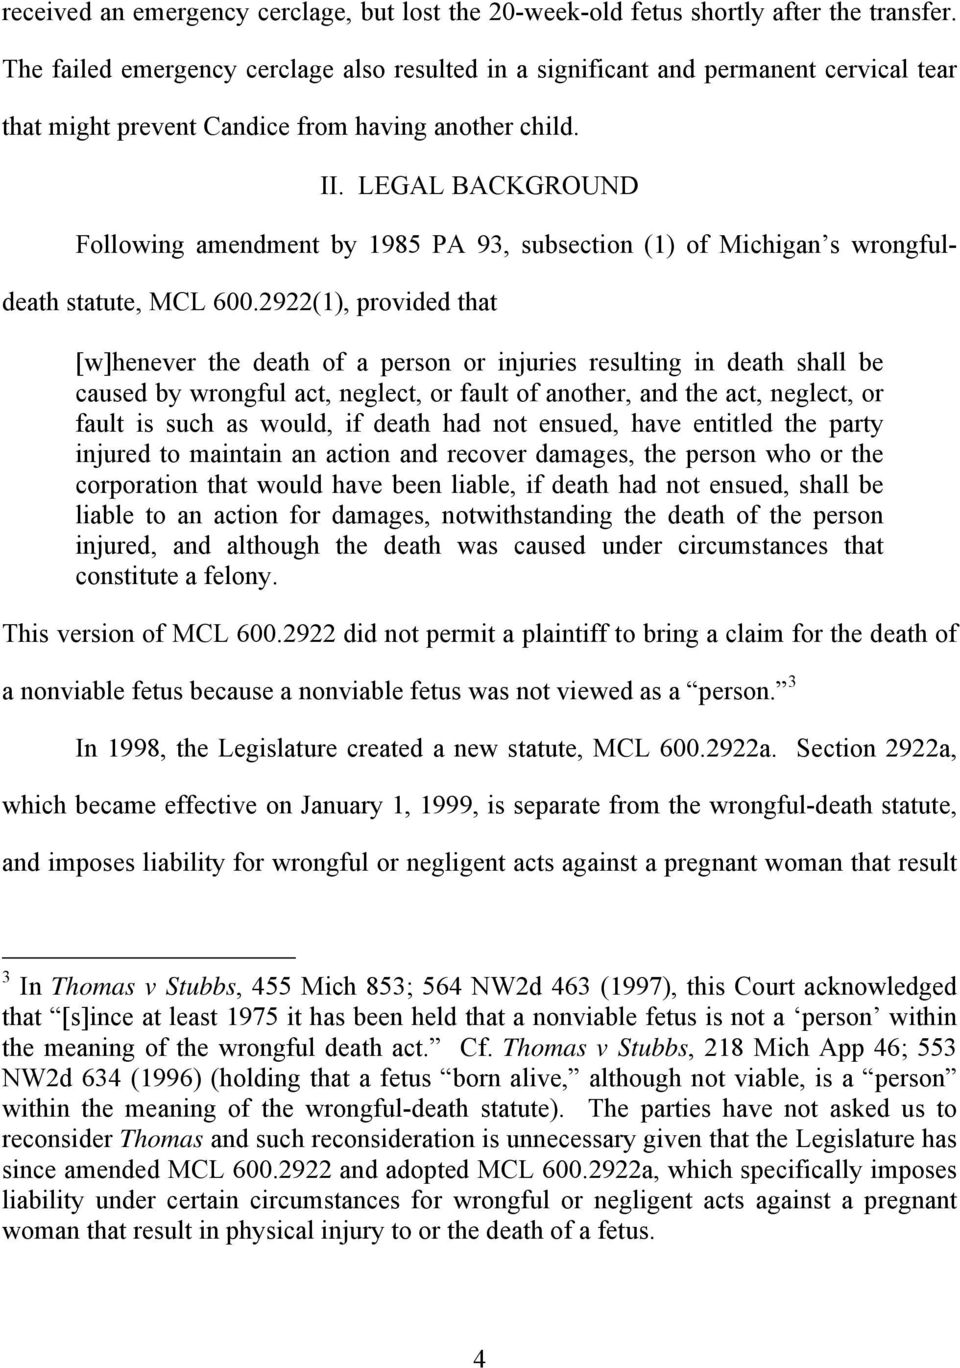 LEGAL BACKGROUND Following amendment by 1985 PA 93, subsection (1) of Michigan s wrongfuldeath statute, MCL 600.